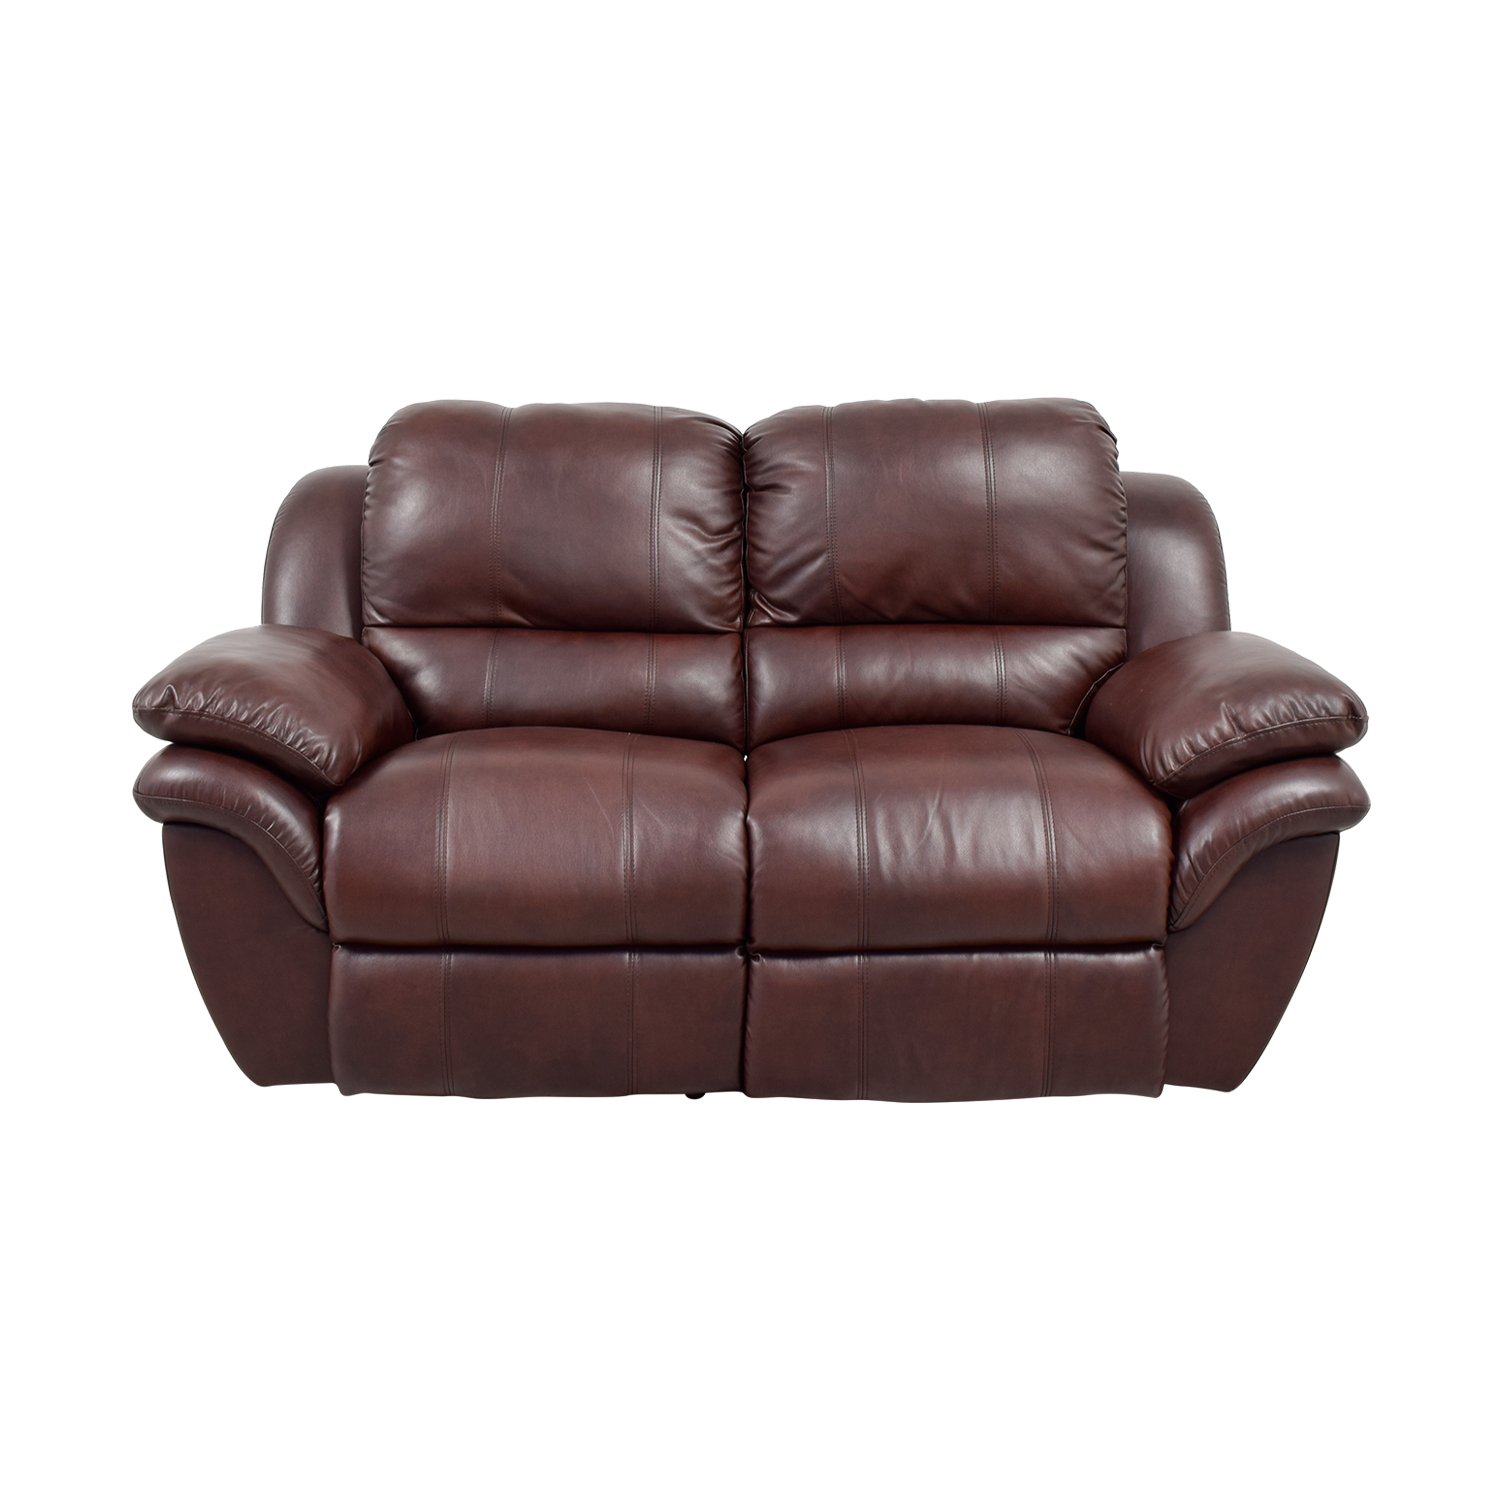 78 Off Bob S Furniture Bob S Furniture Brown Leather